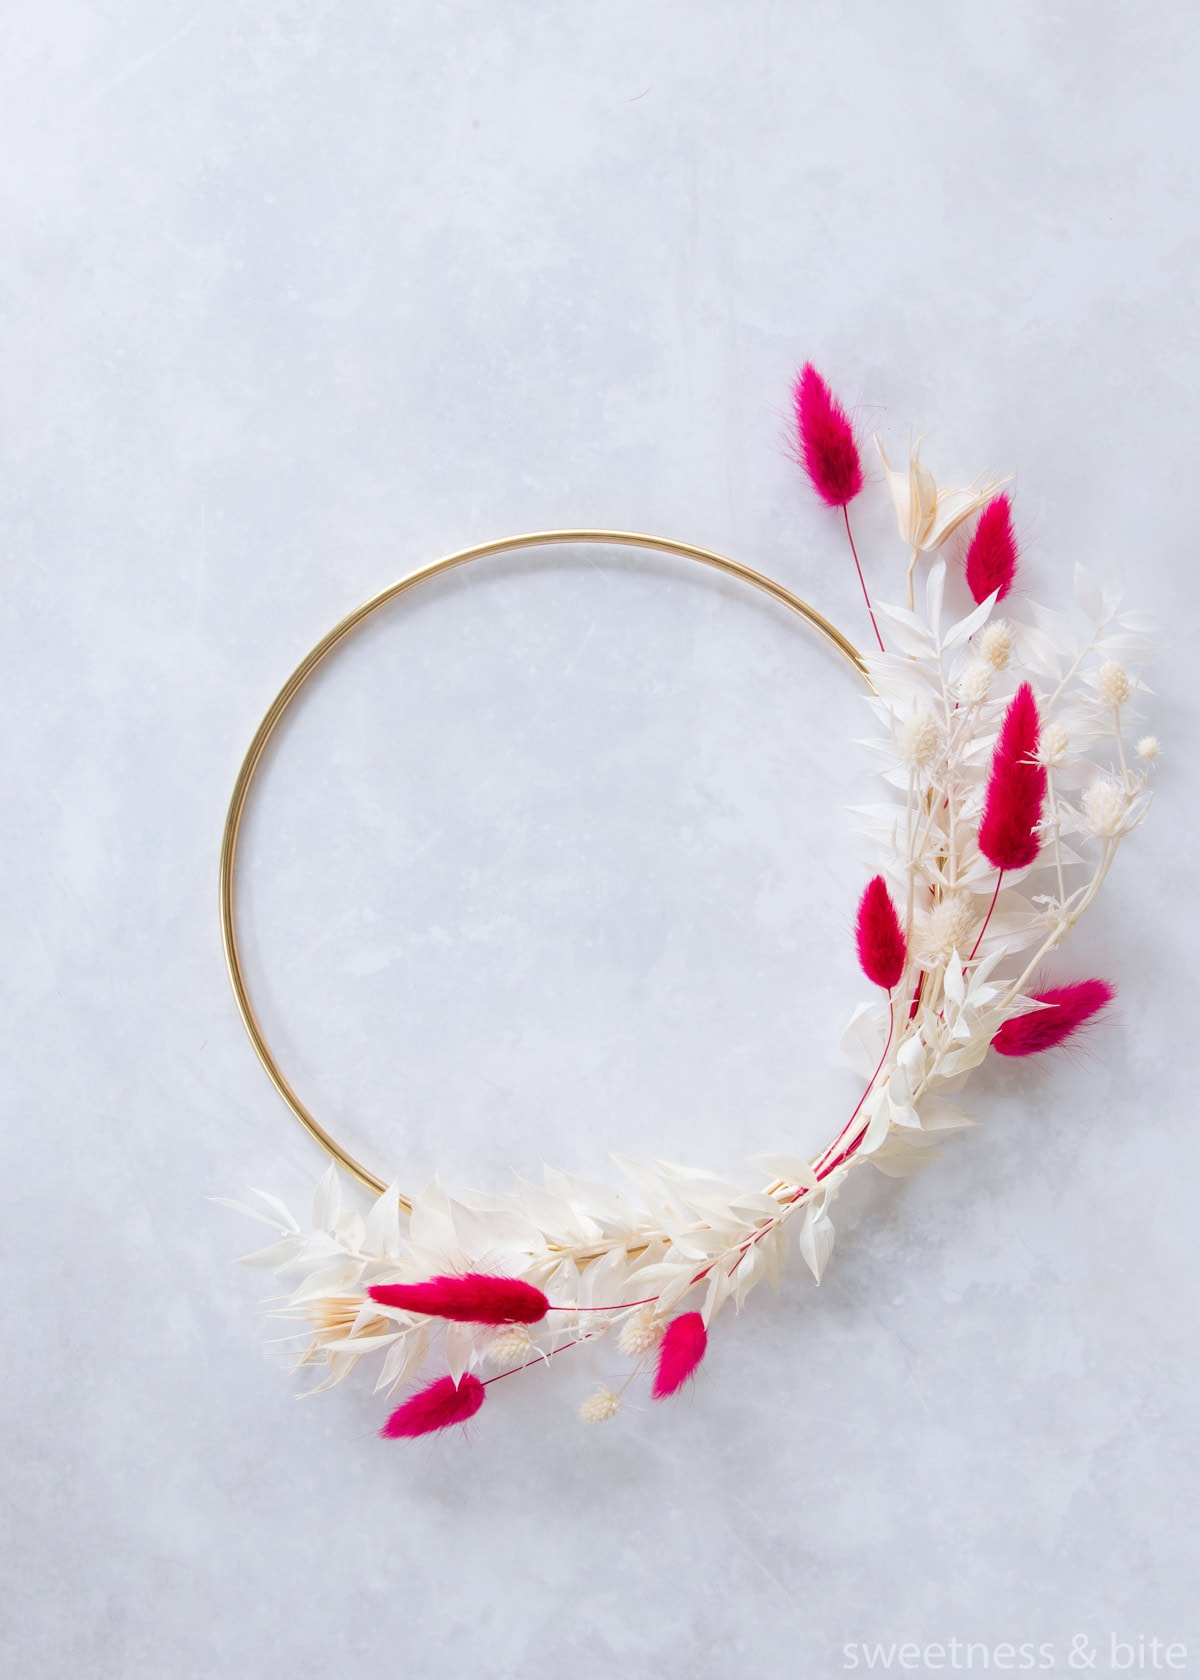 The two pieces of ruscus tied in place in the middle of the hoop.